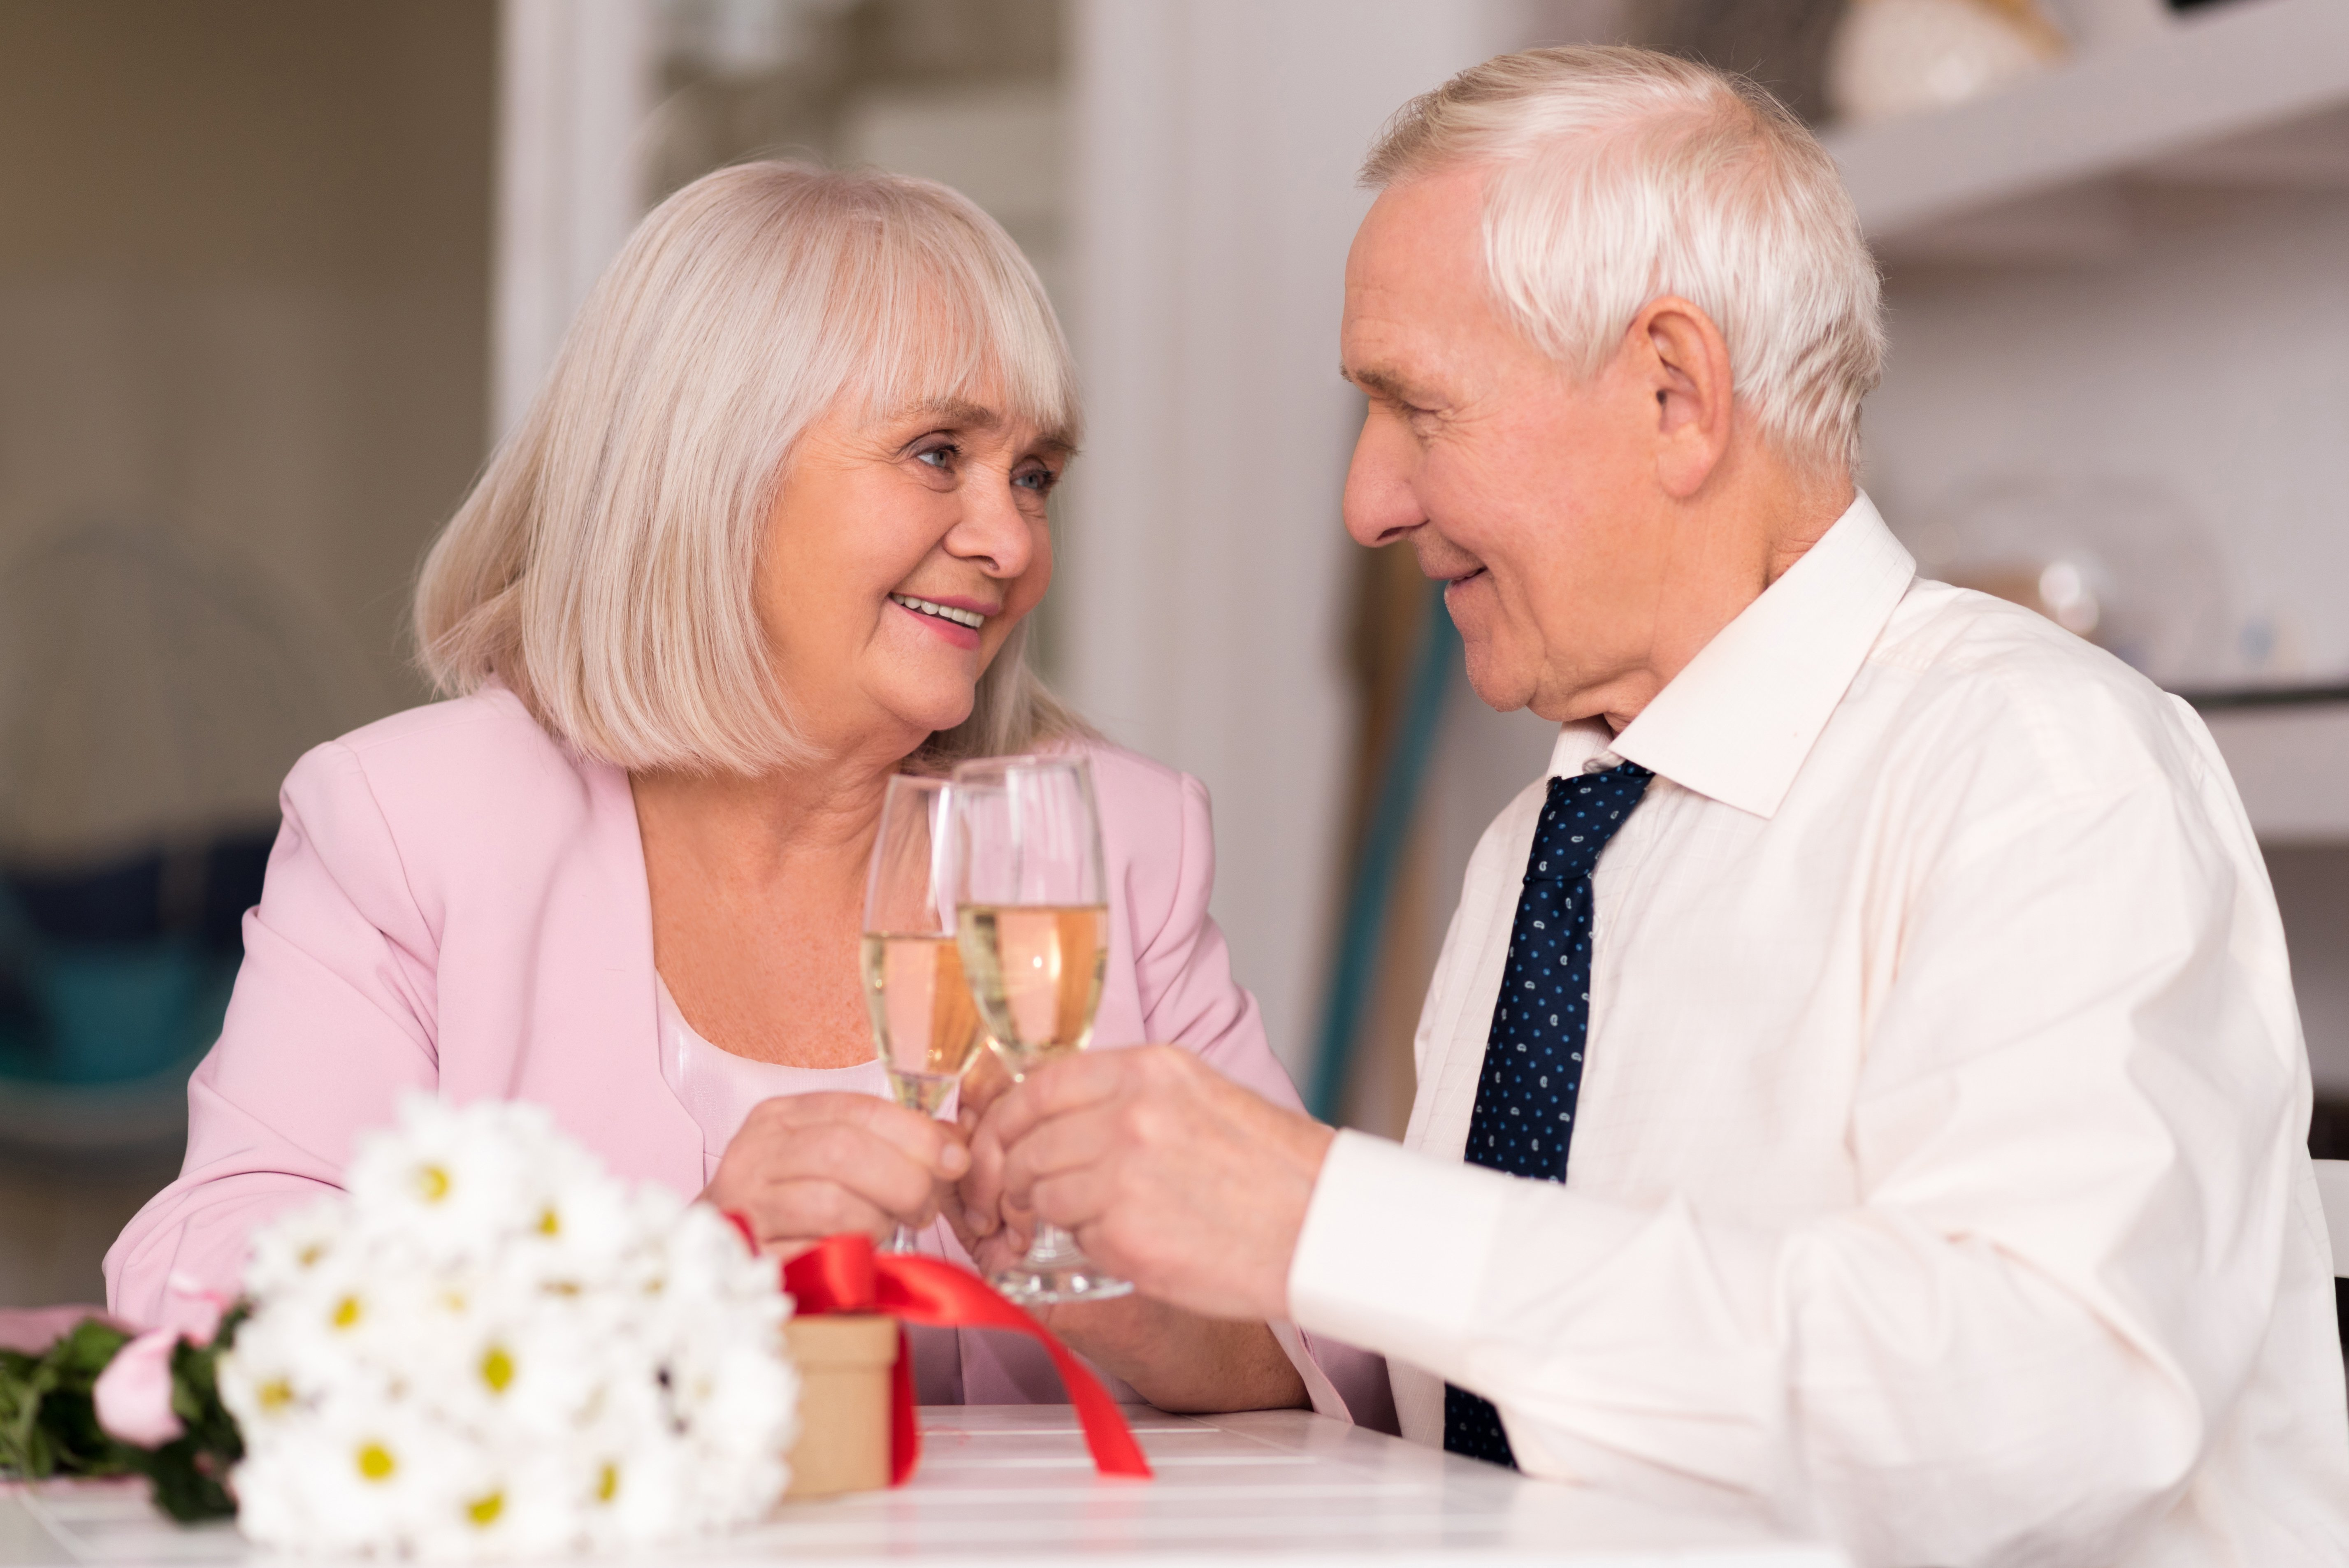 Cheerful senior couple raising their glasses to love | Photo: Shutterstock.com